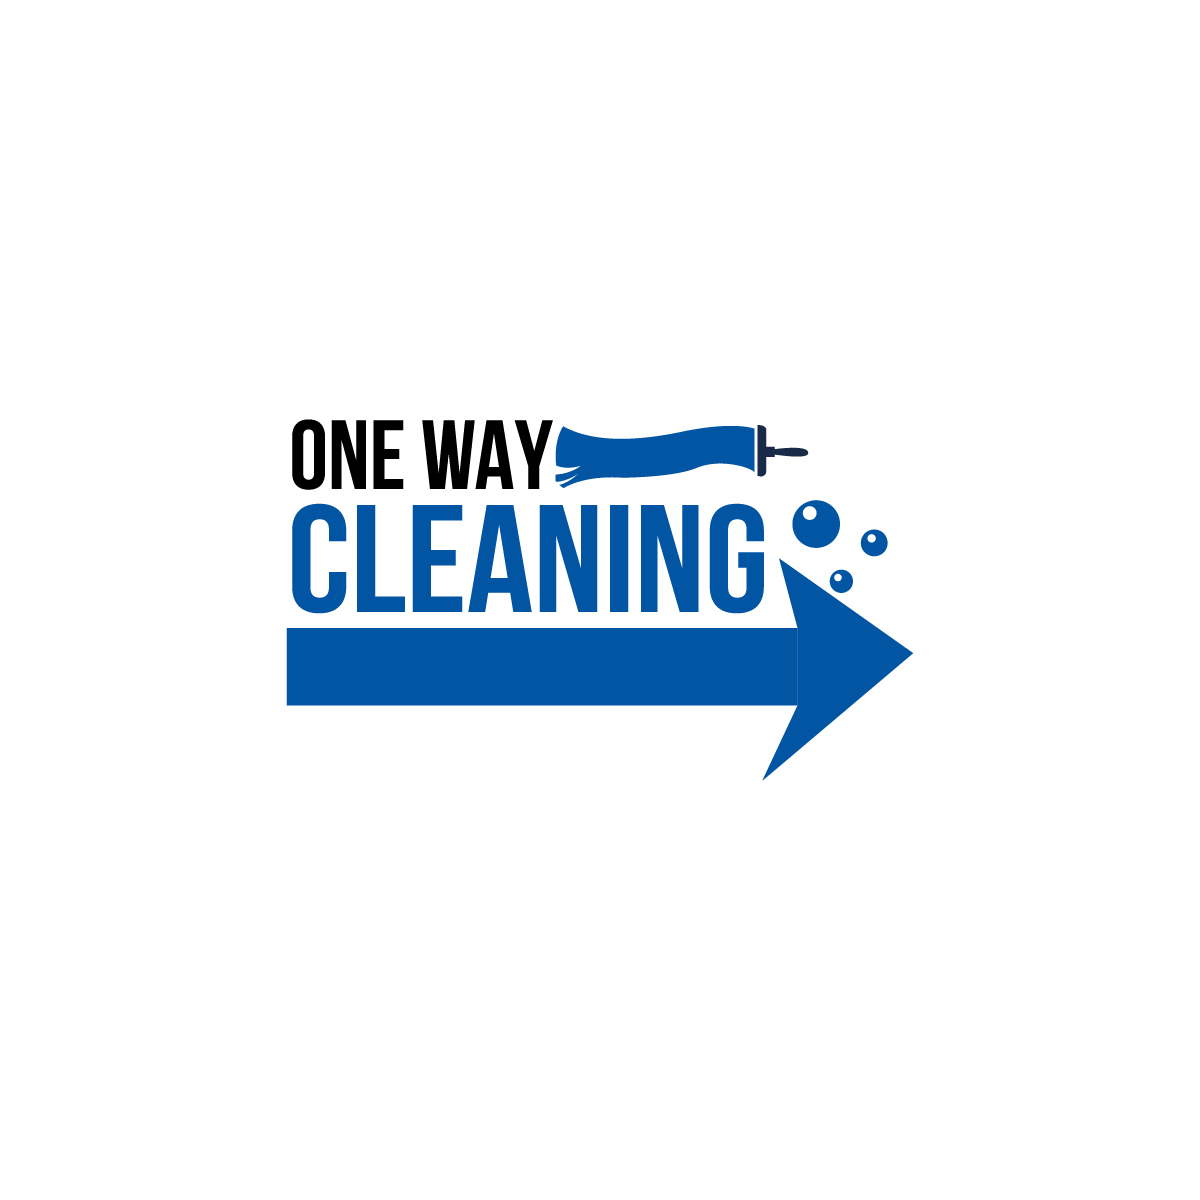 Logo Design By Arrow Designs For One Way Cleaning 19850350